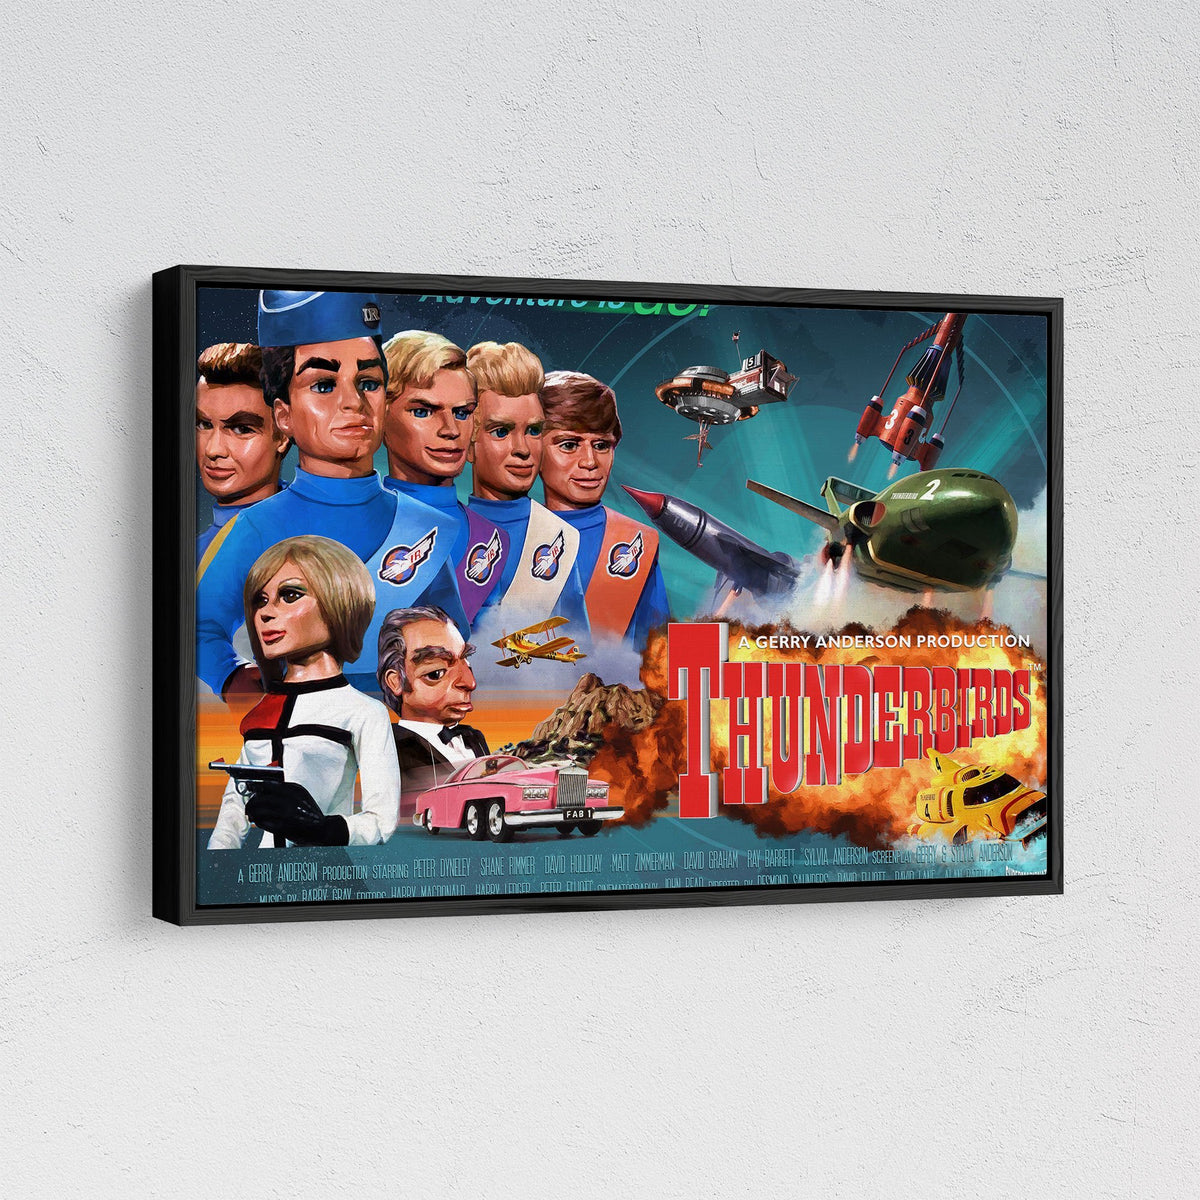 Thunderbirds Framed Canvas Print [Official and Exclusive] - The Gerry Anderson Store